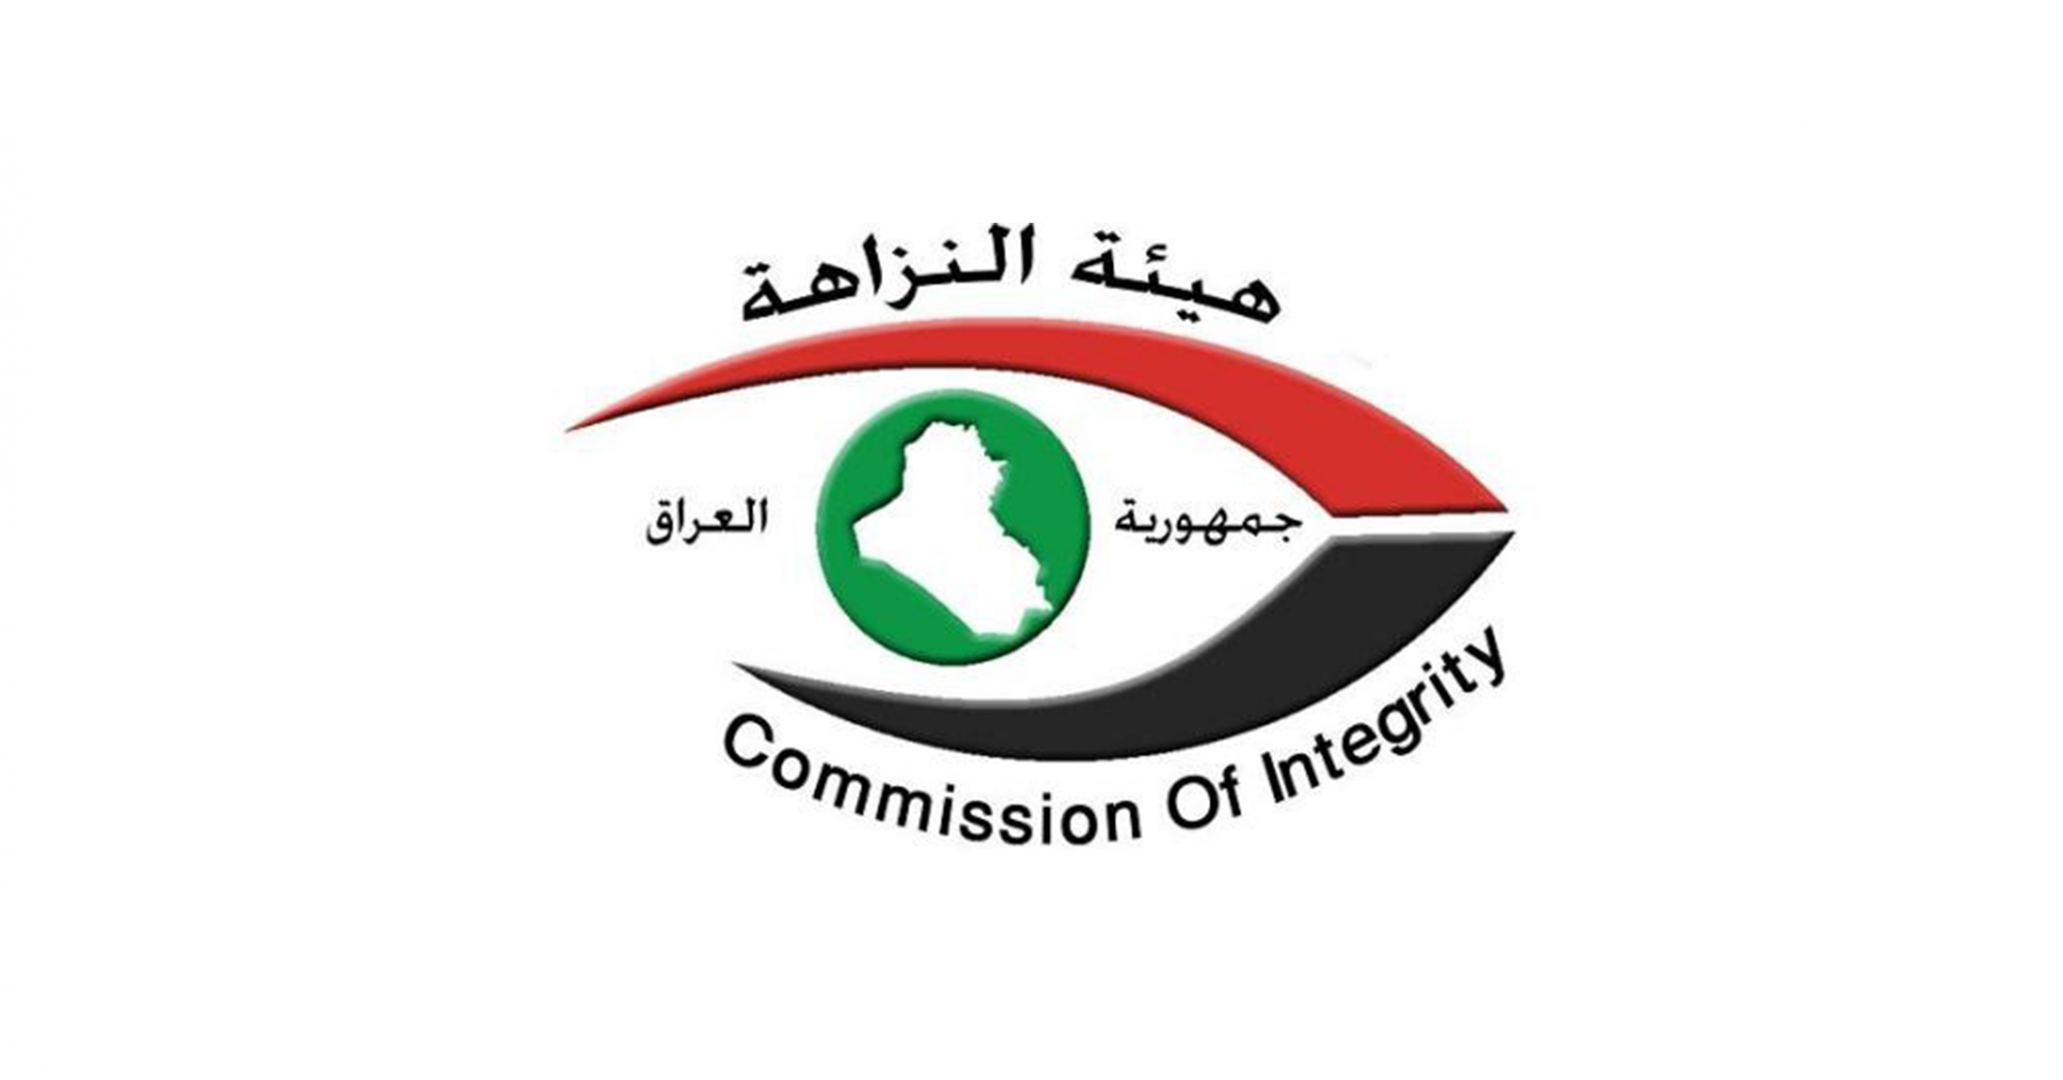 The Commission of Integrity prevents a six billion dinars illegal operation